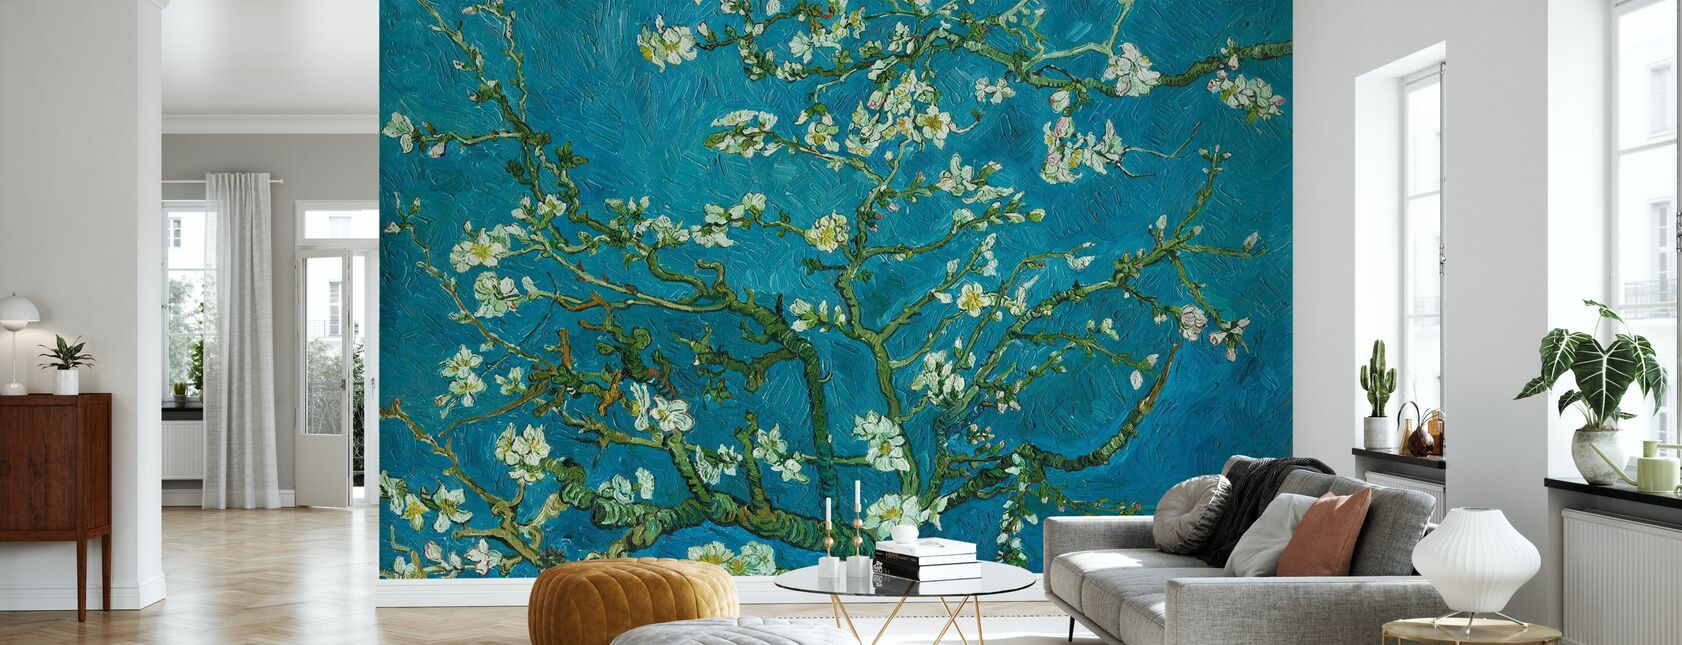 Almond Blossom - Wallpaper - Living Room